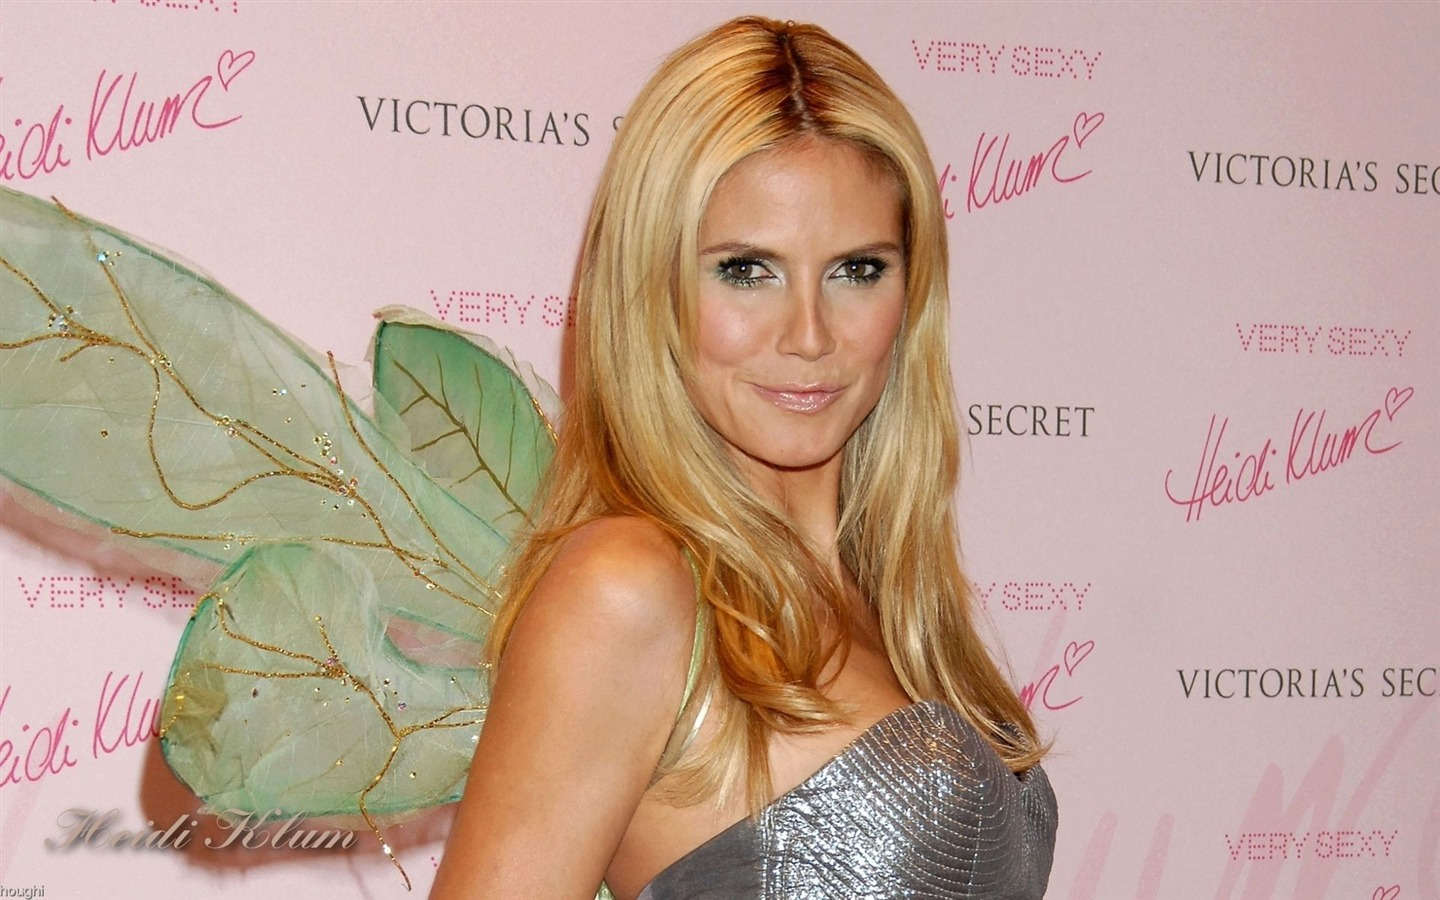 Heidi Klum #047 - 1440x900 Wallpapers Pictures Photos Images